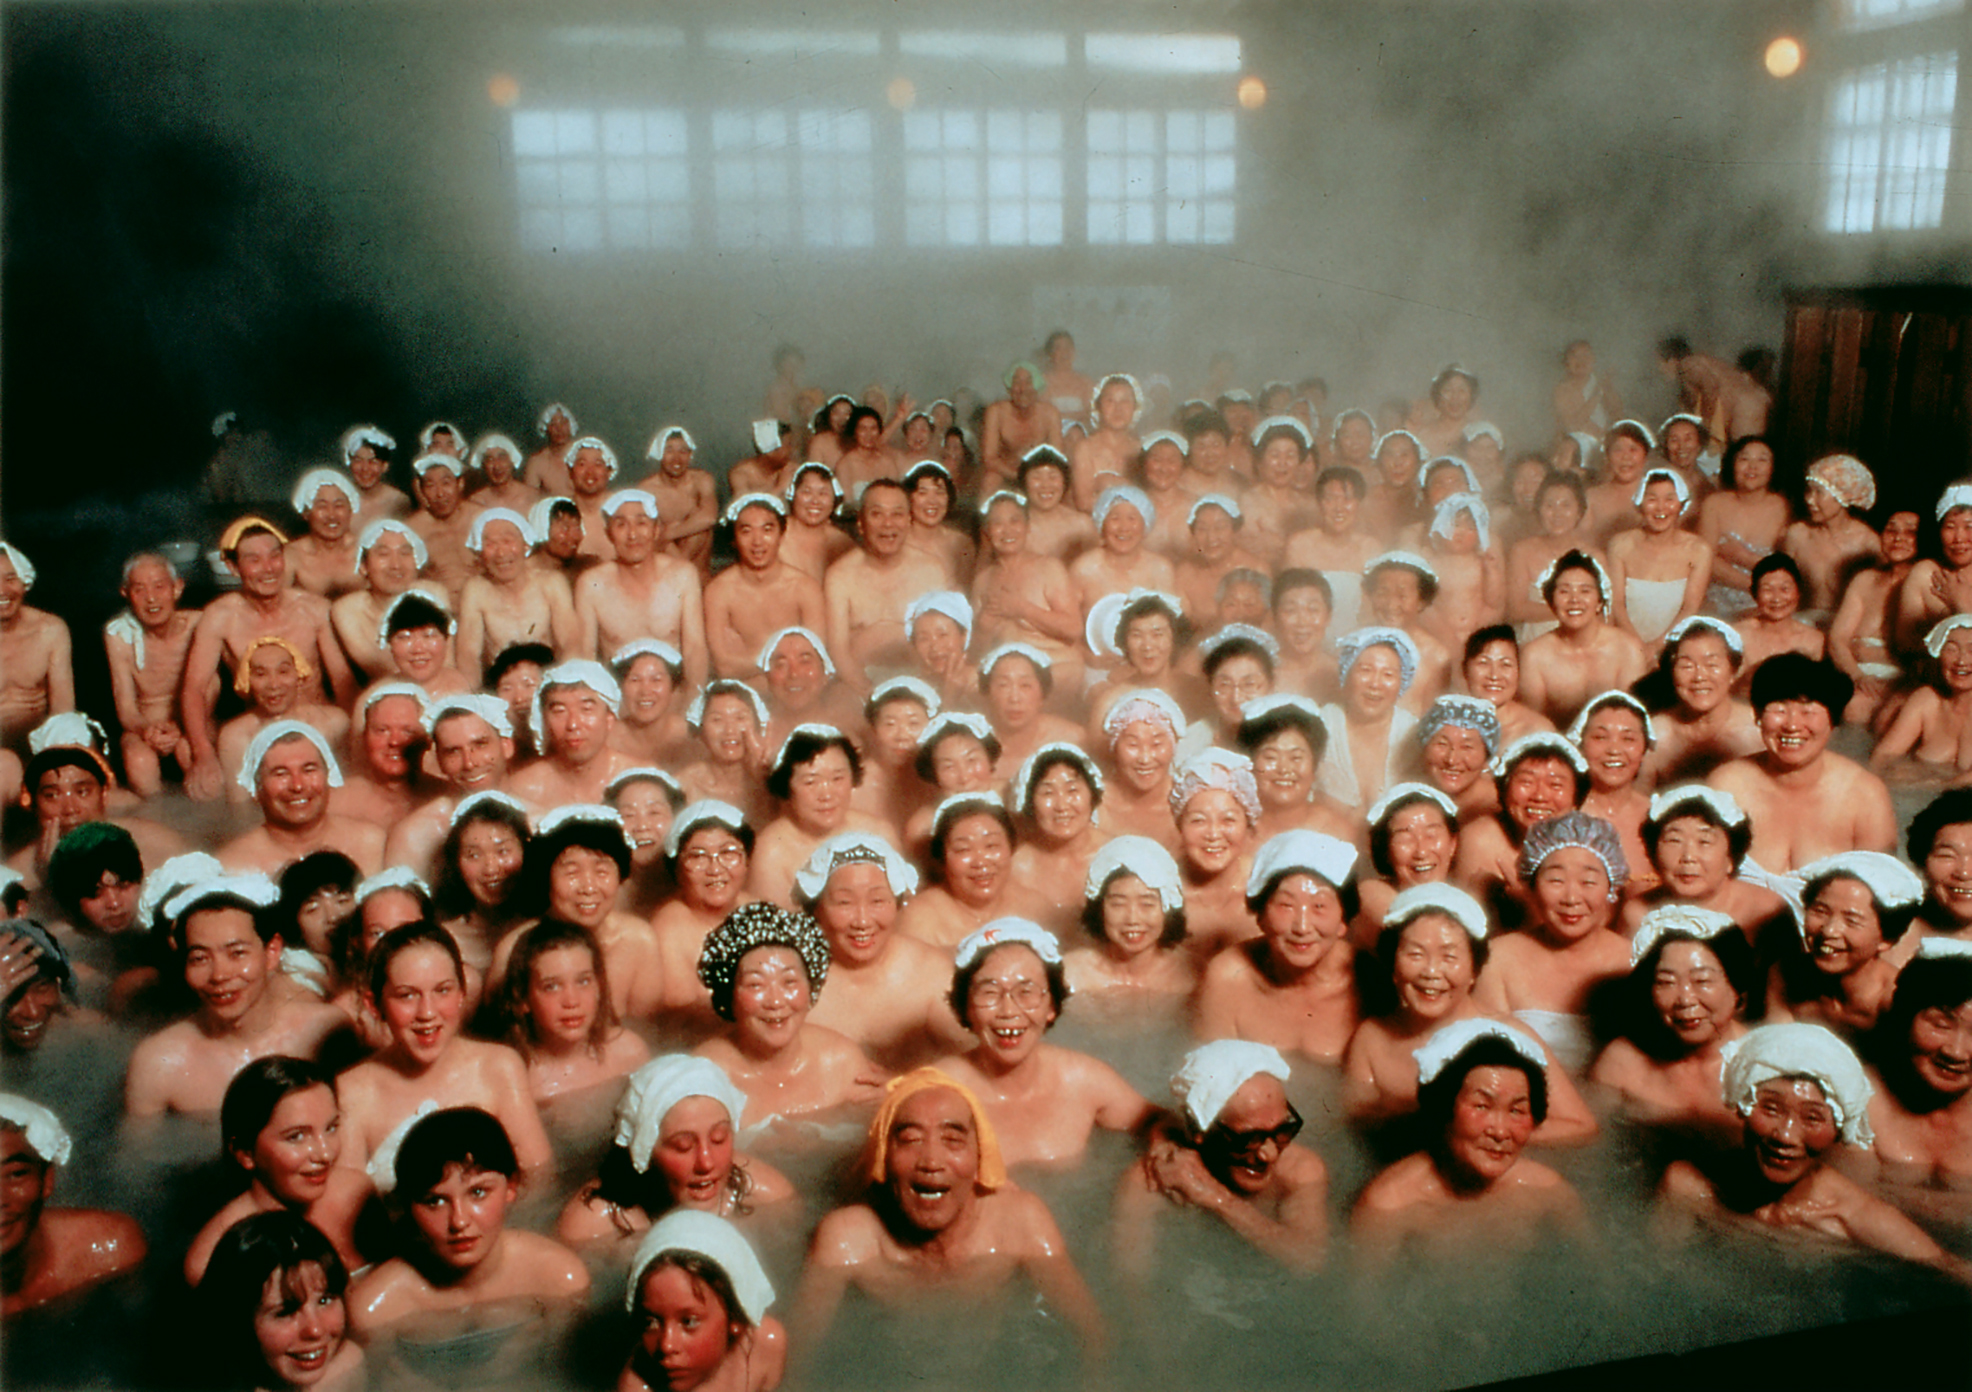 https://www.japantimes.co.jp/wp-content/uploads/2016/12/p14-hadfield-mixed-onsen-b-20161211.jpg